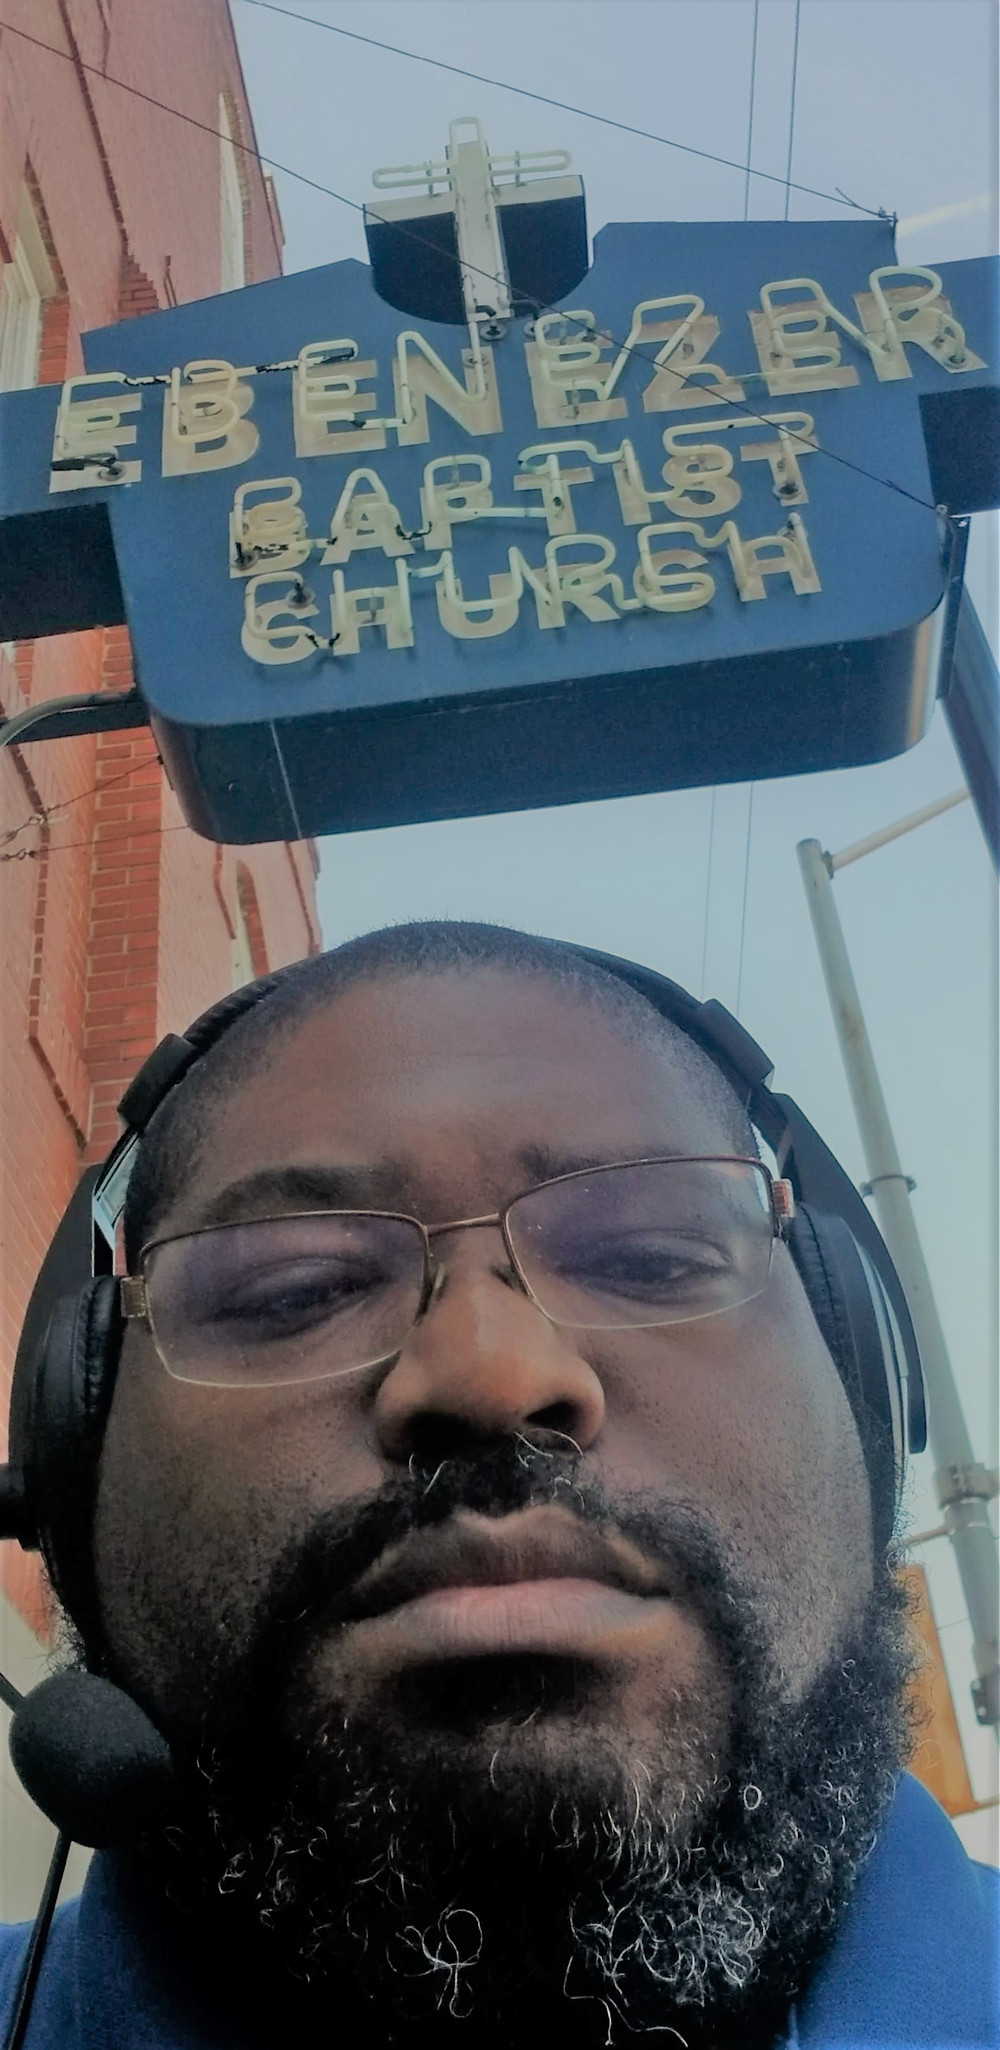 Terry Watson at the Ebenezer Baptist Church sign